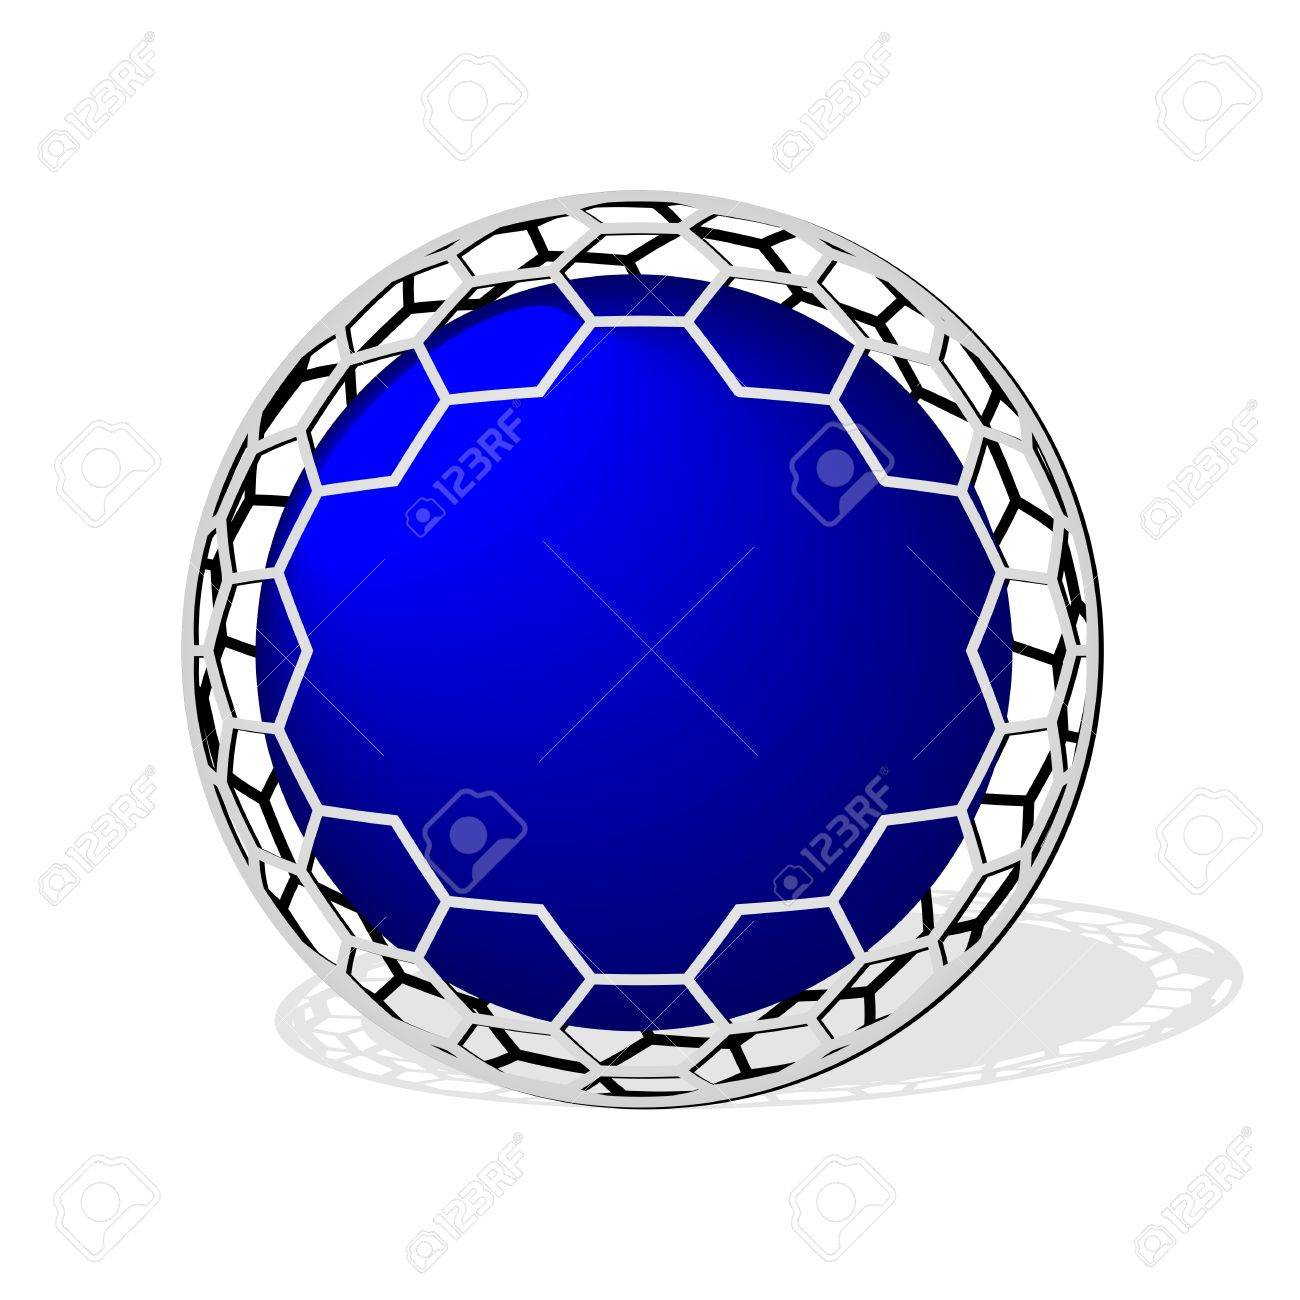 empty blue sphere icon with metal wire mesh Stock Photo - 20489117